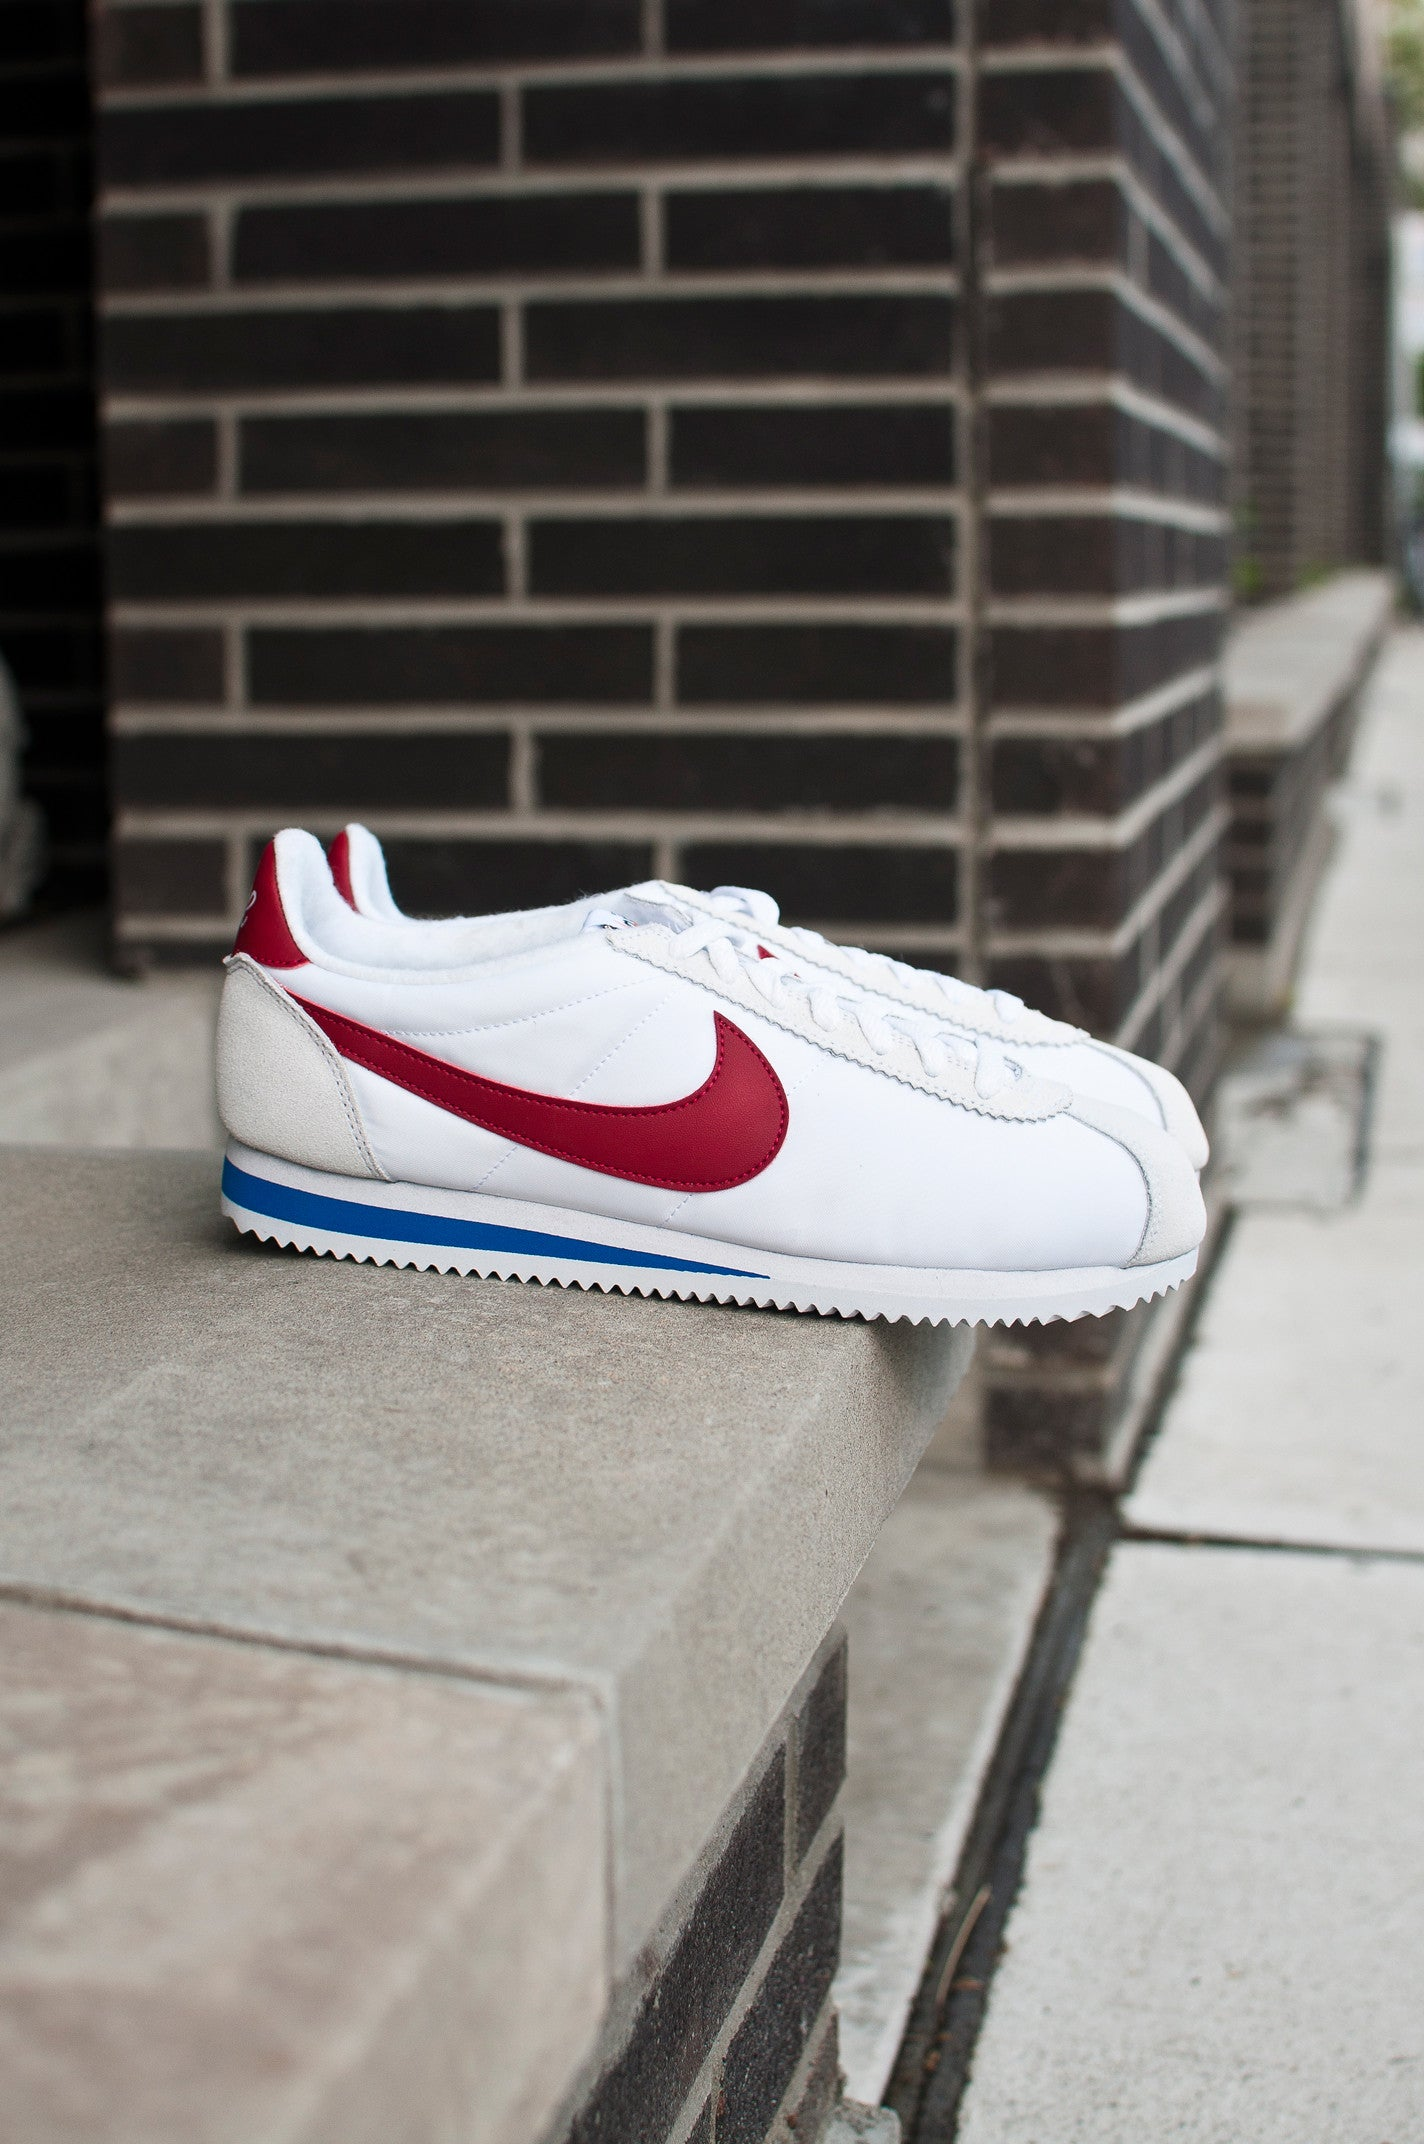 Nike Air Classic Cortez Premium White/Red/Royal 876873-101, 1